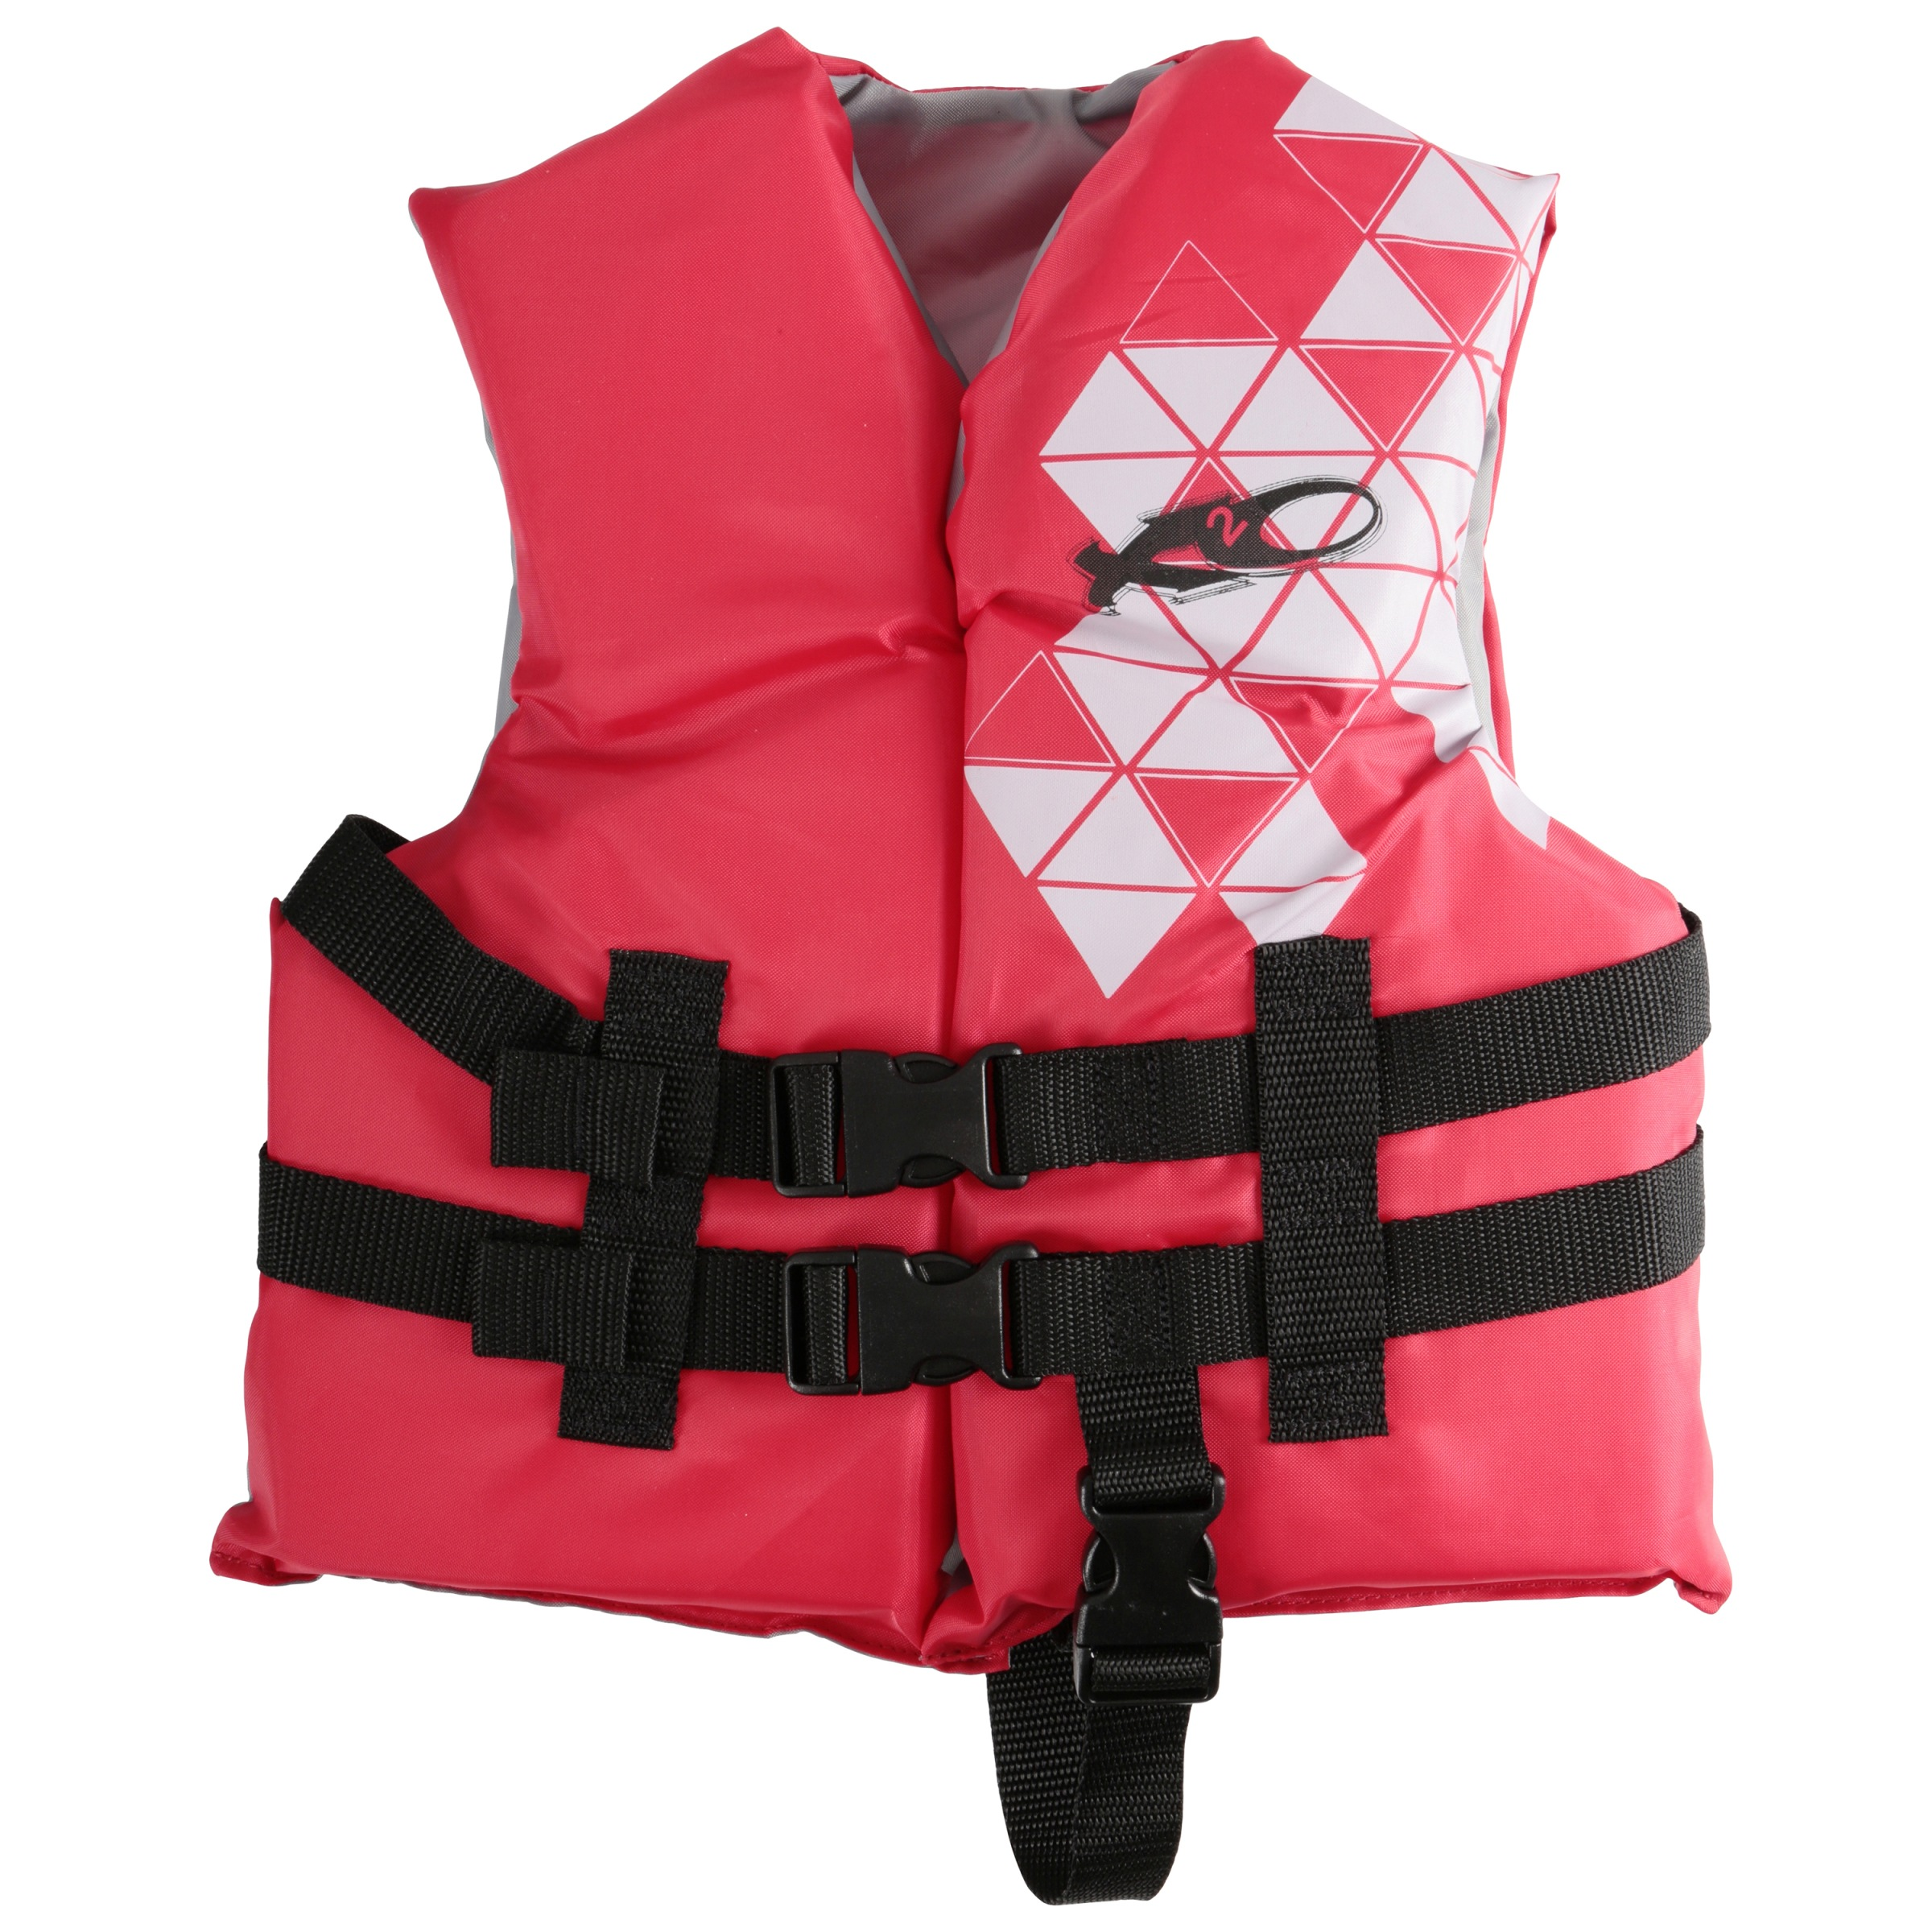 Exxel Outdoors Child Life Vest by Exxel Outdoors